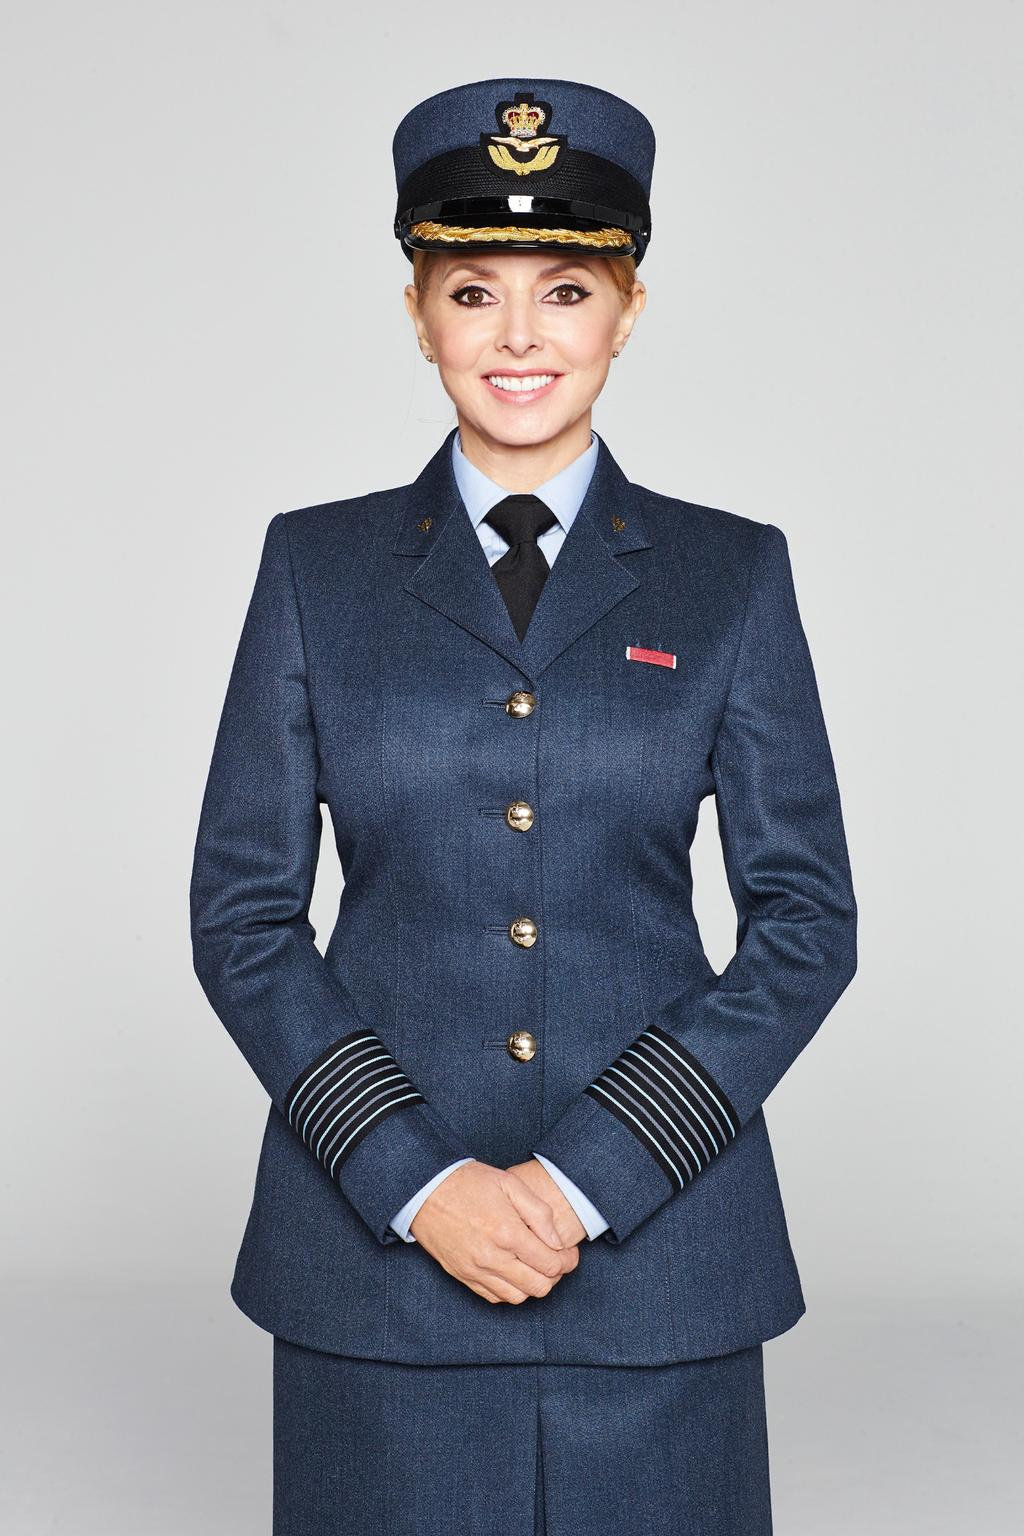 RT @JohnNicholRAF: Huge congrats to Group Captain @carolvorders - 1st Female Honorary Ambassador 4 RAF Air Cadets @ComdtAC @aircadets http:…